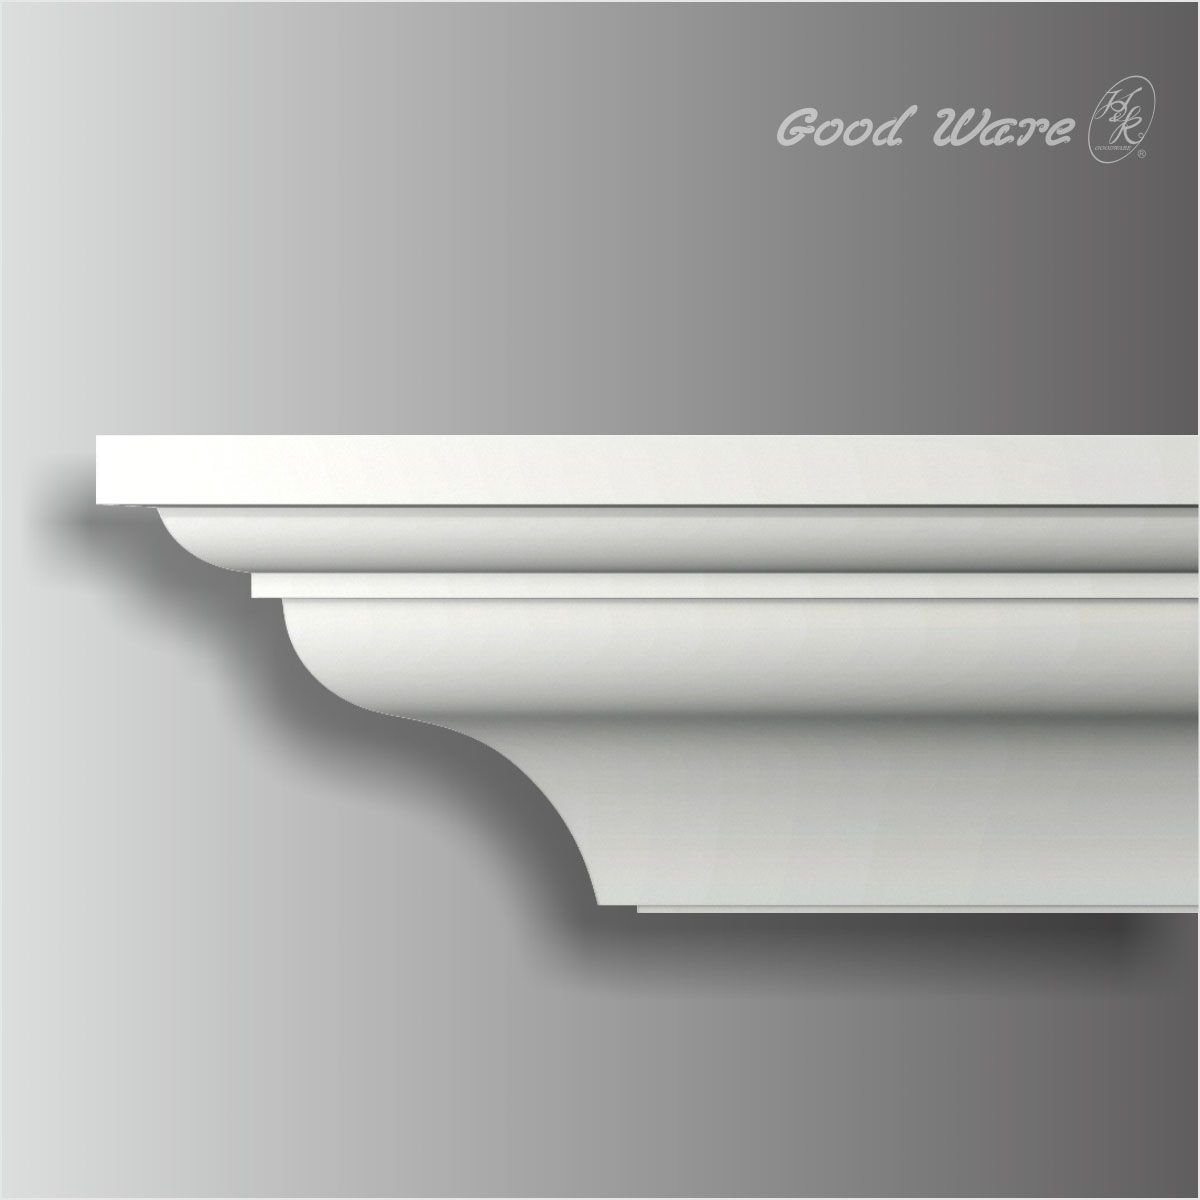 Hk 568 Polyurethane Simple Cornice Molding For Sale Cornice Design Ceiling Design Modern Ceiling Design Bedroom